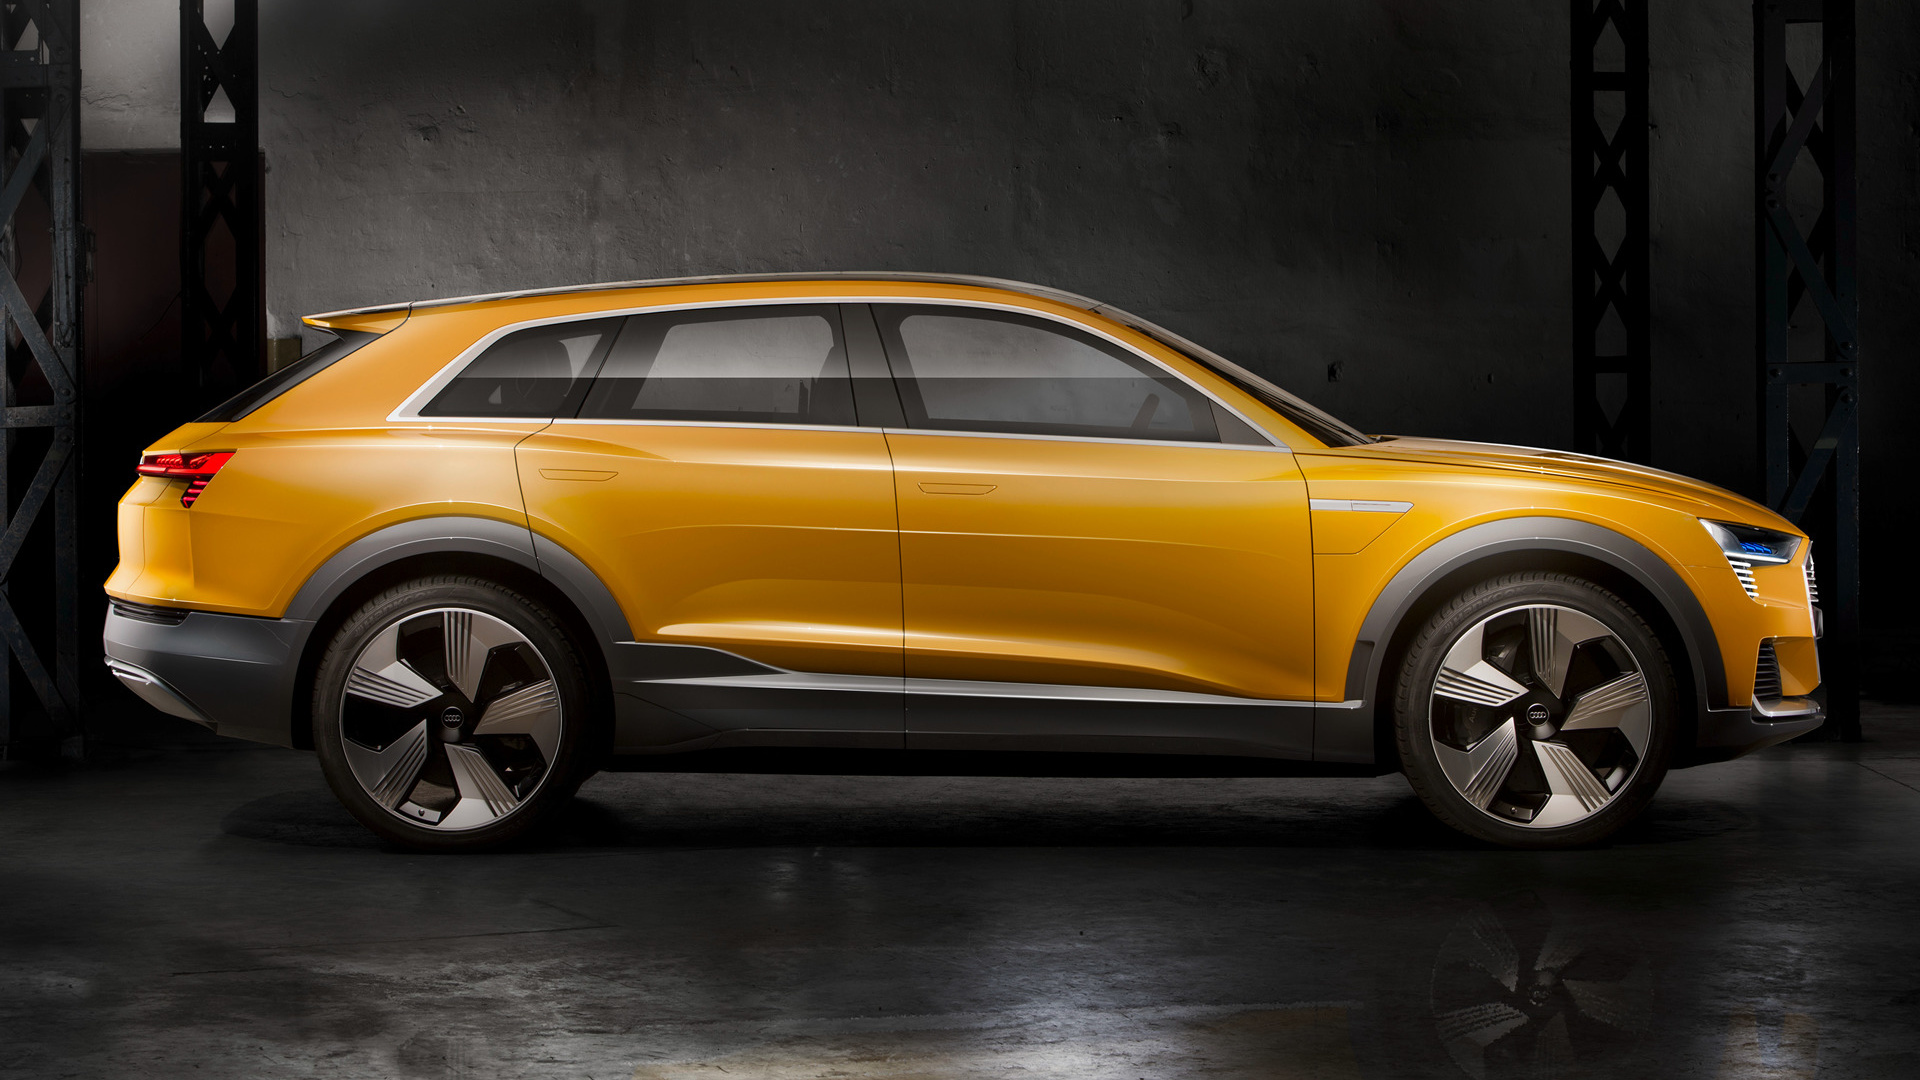 Audi H-tron Quattro Concept (2016) Wallpapers And HD